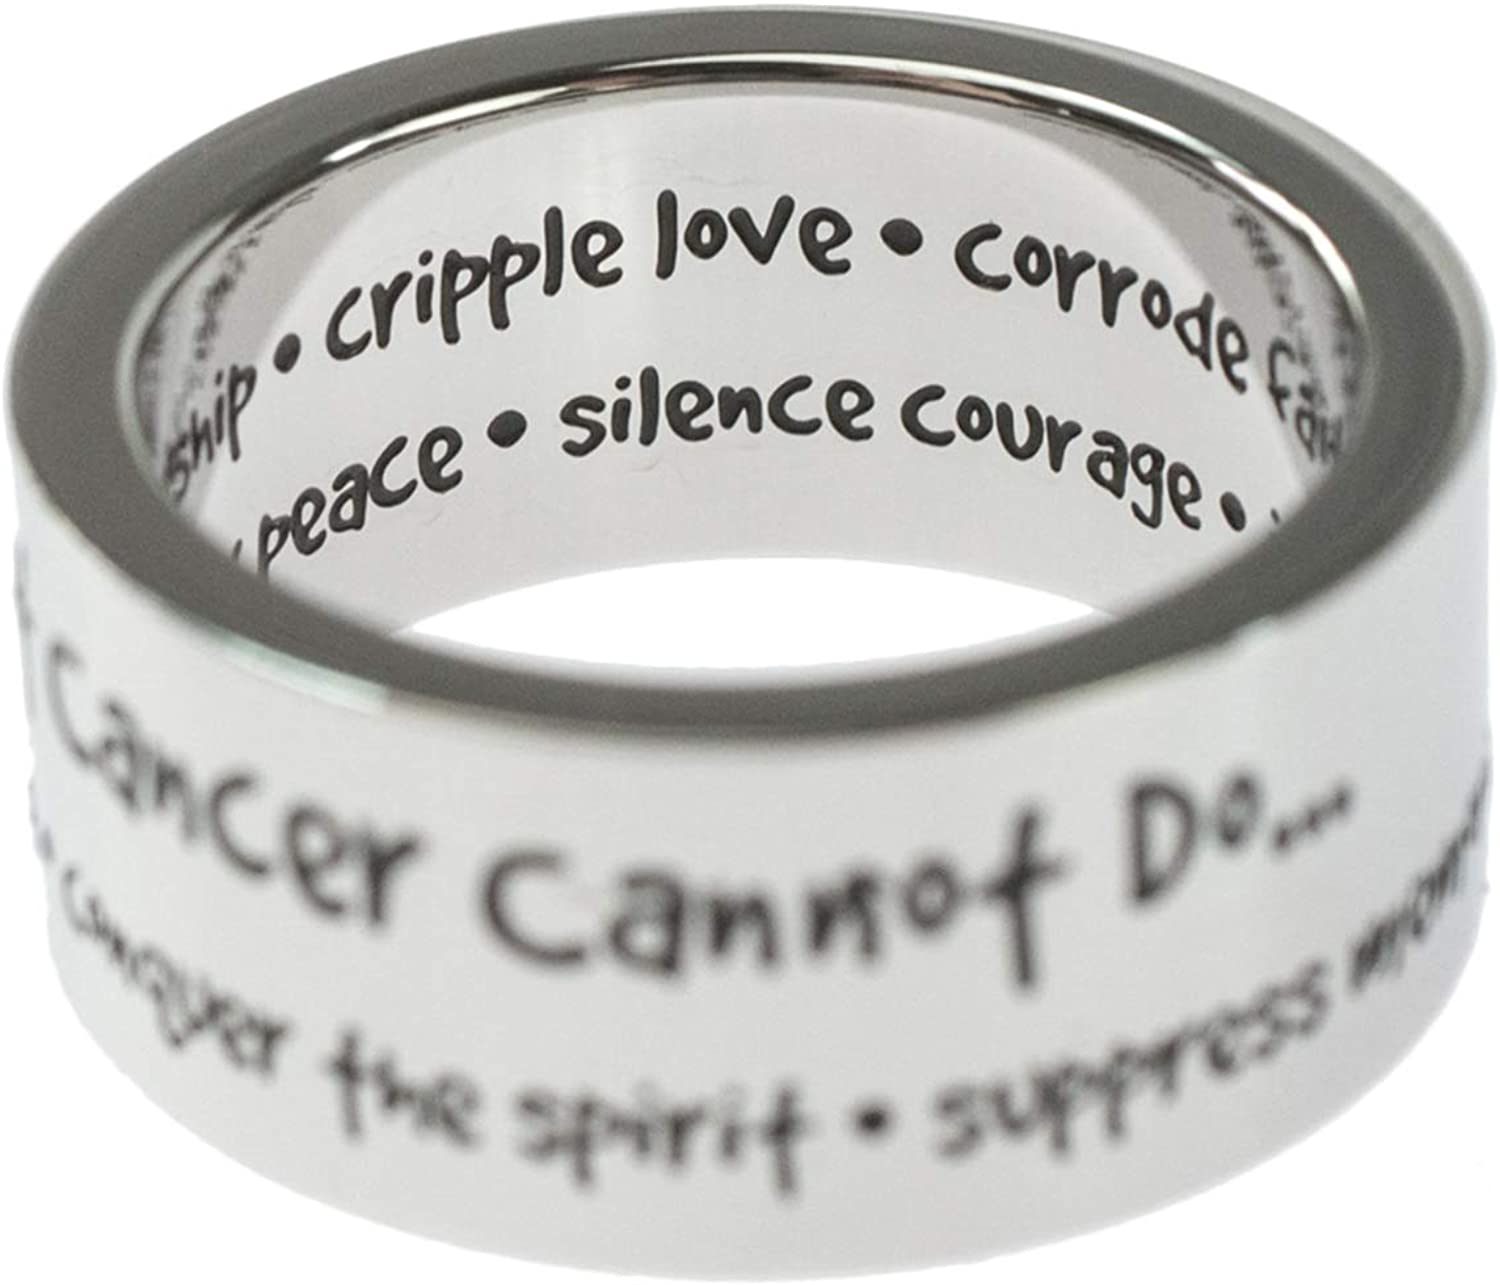 Joyful Sentiments Inspirational Jewelry Stainless Steel What Cancer Cannot Do Ring